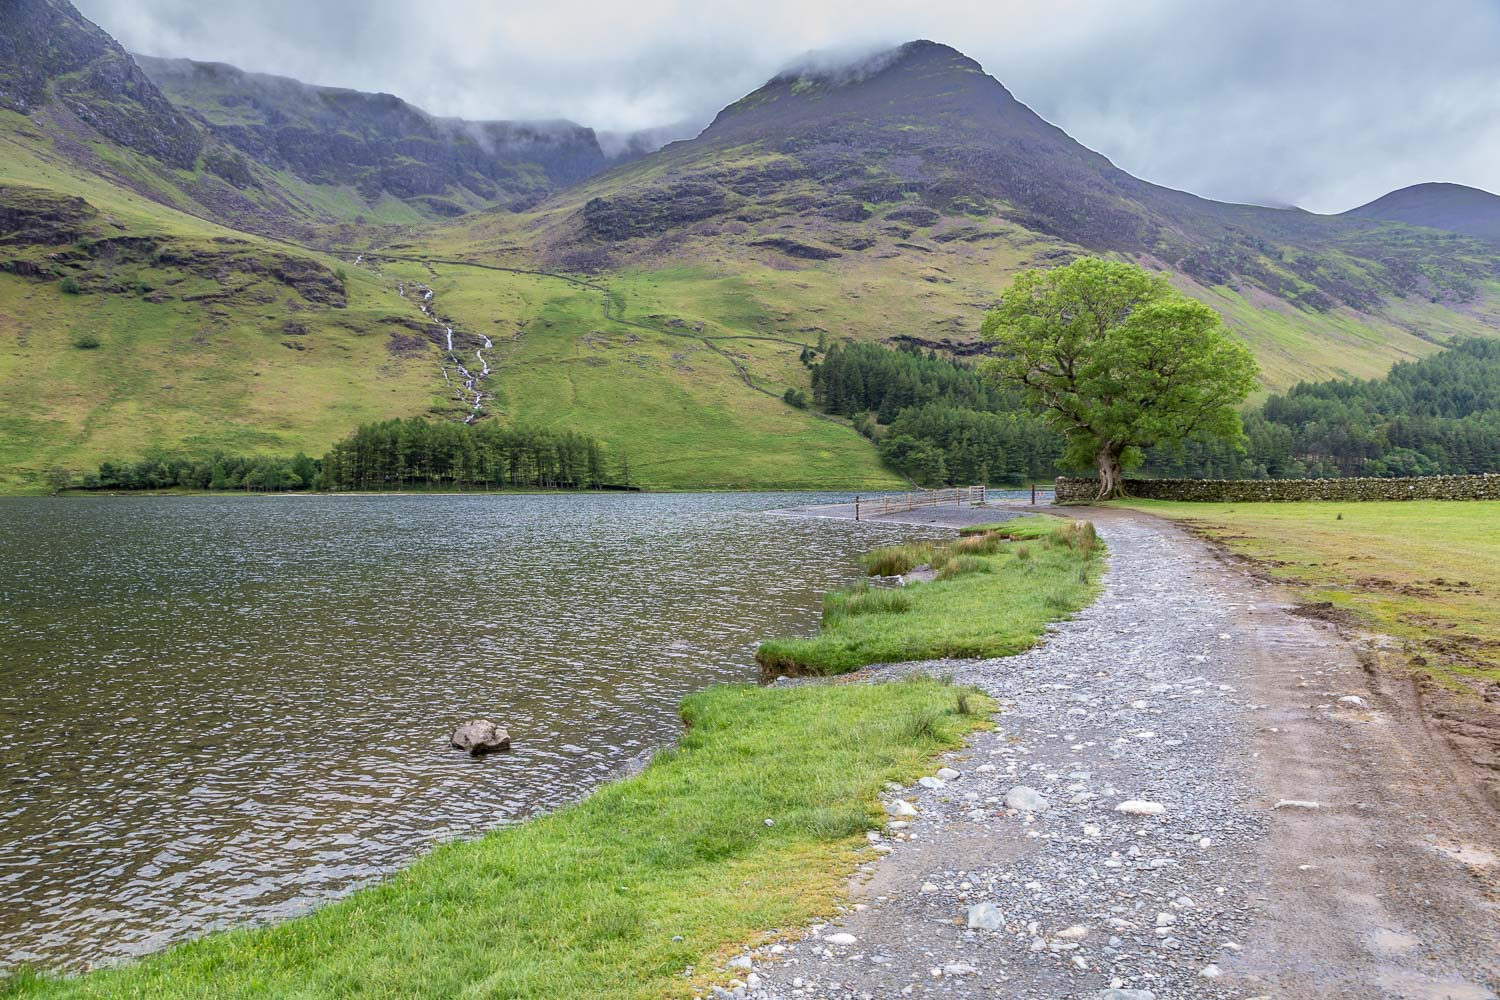 High Stile Buttermere